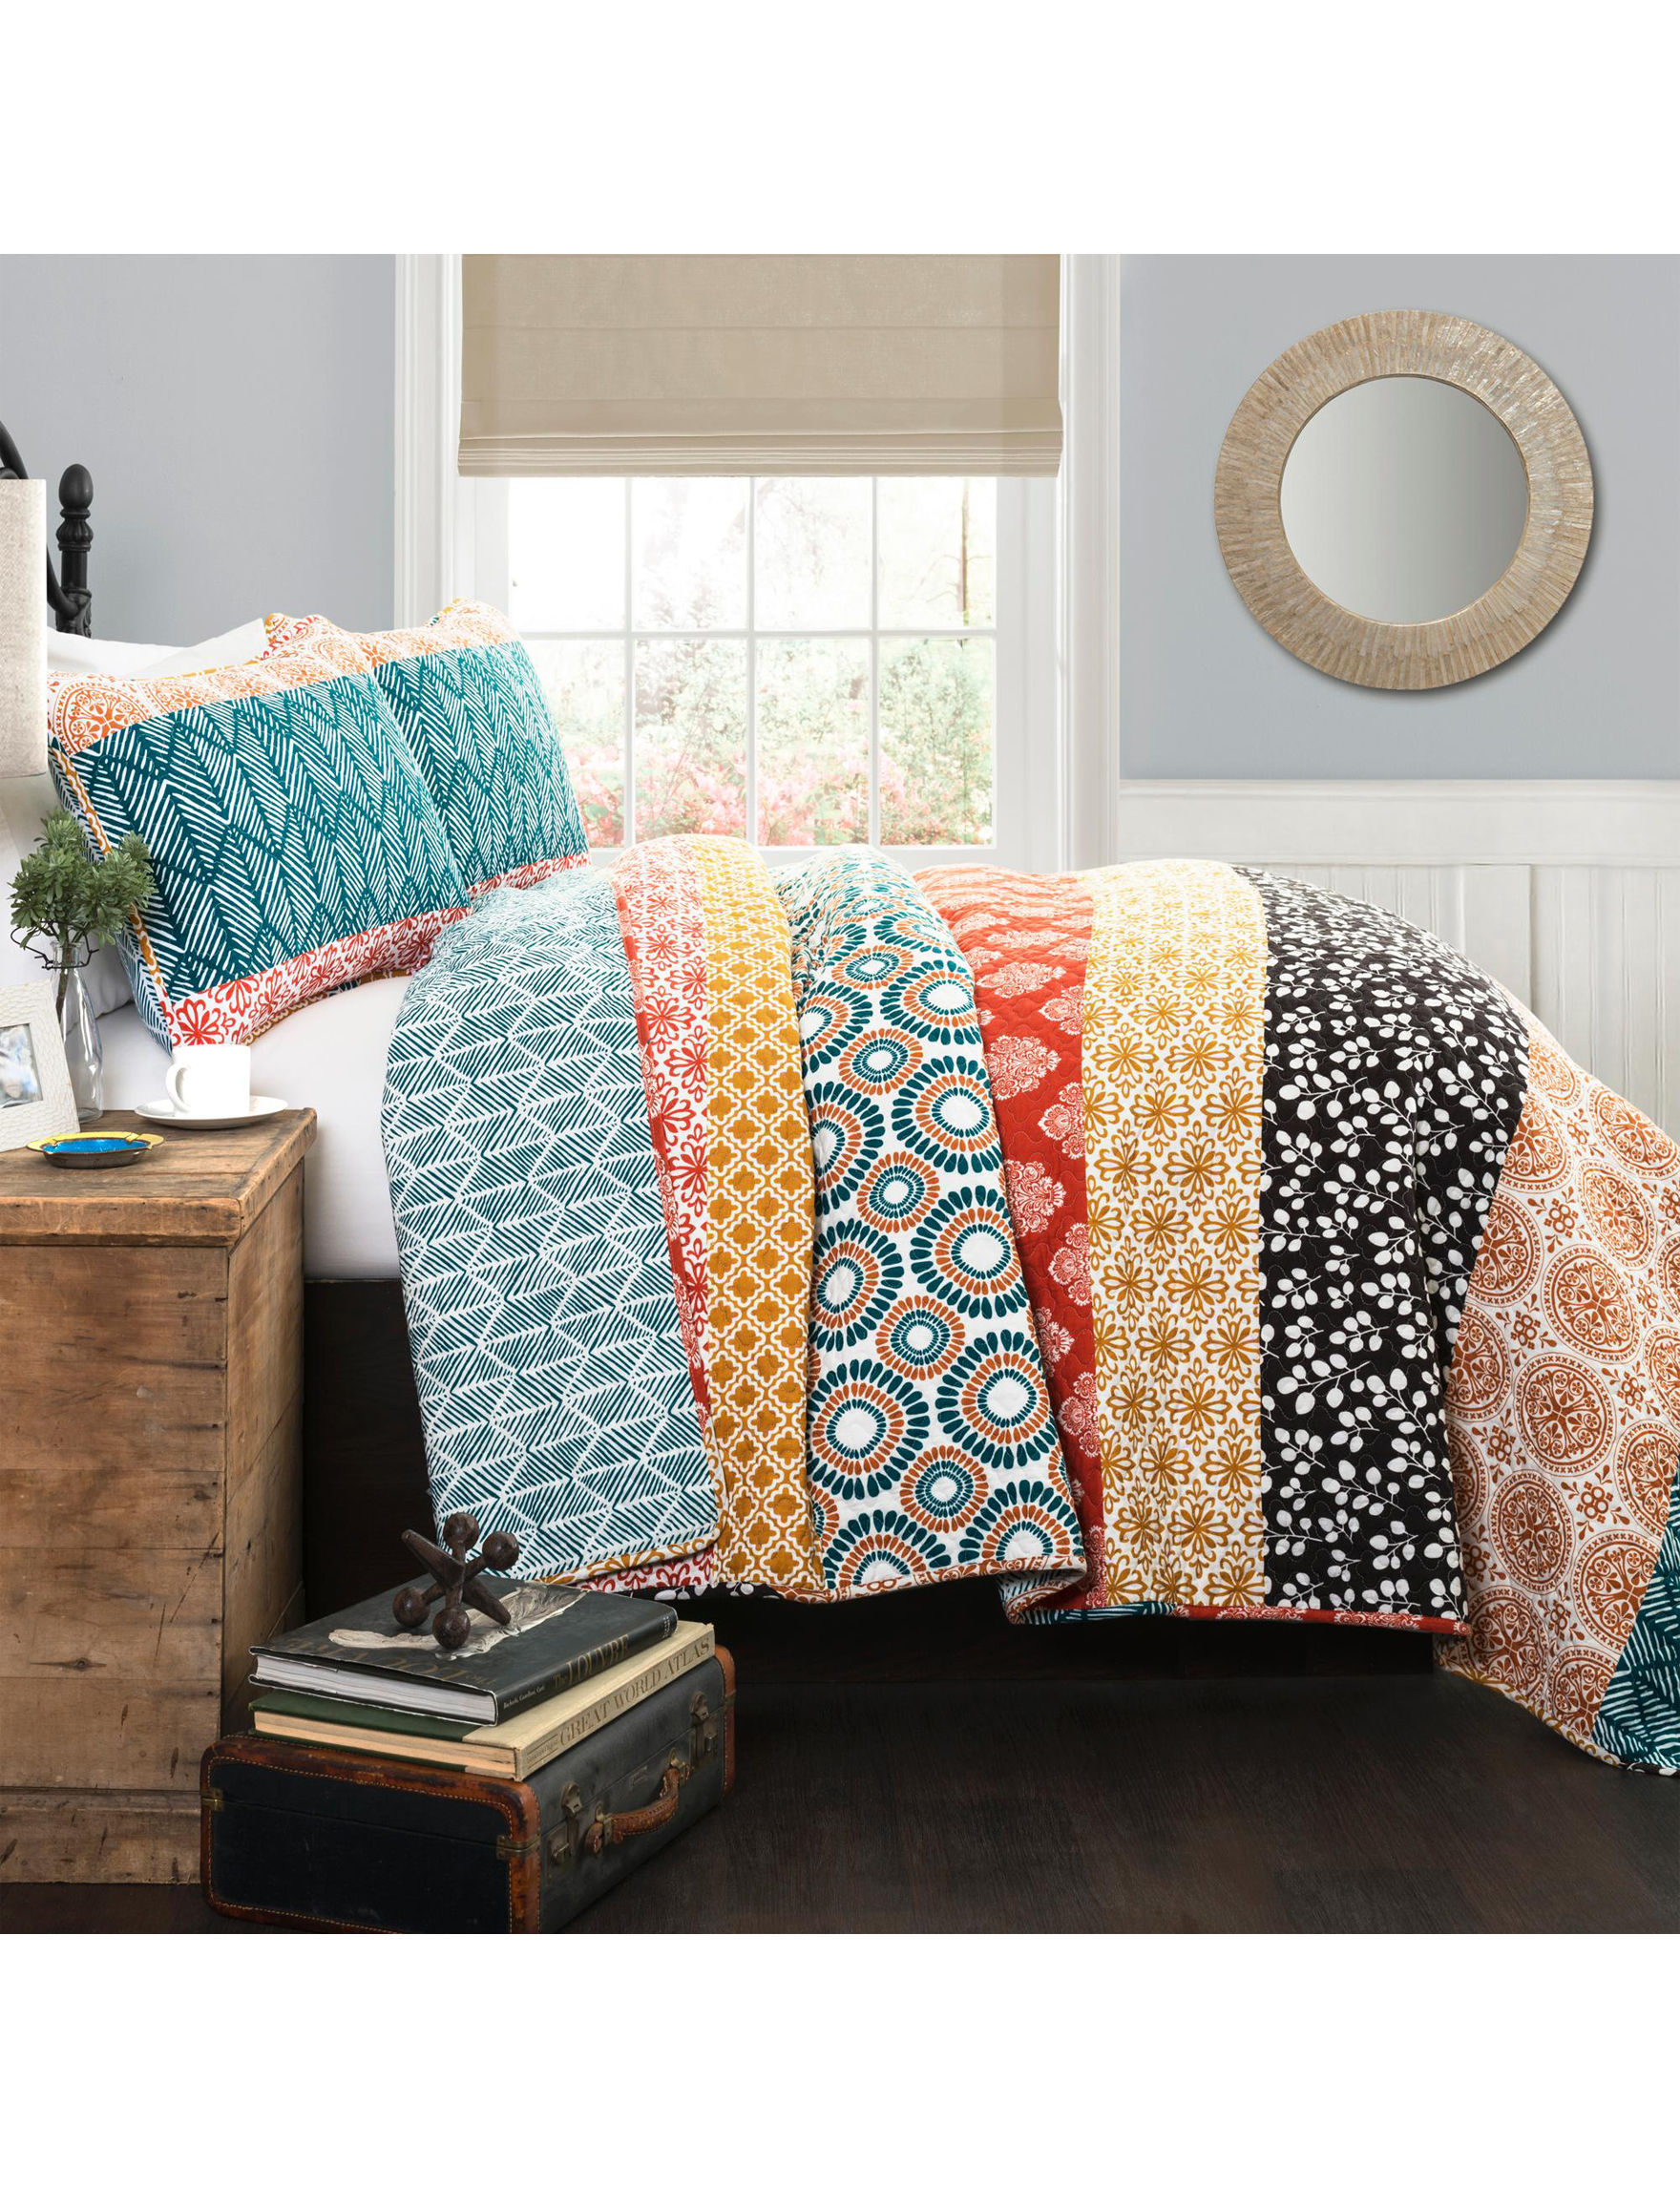 Lush Decor Turquoise/ Orange Quilts & Quilt Sets